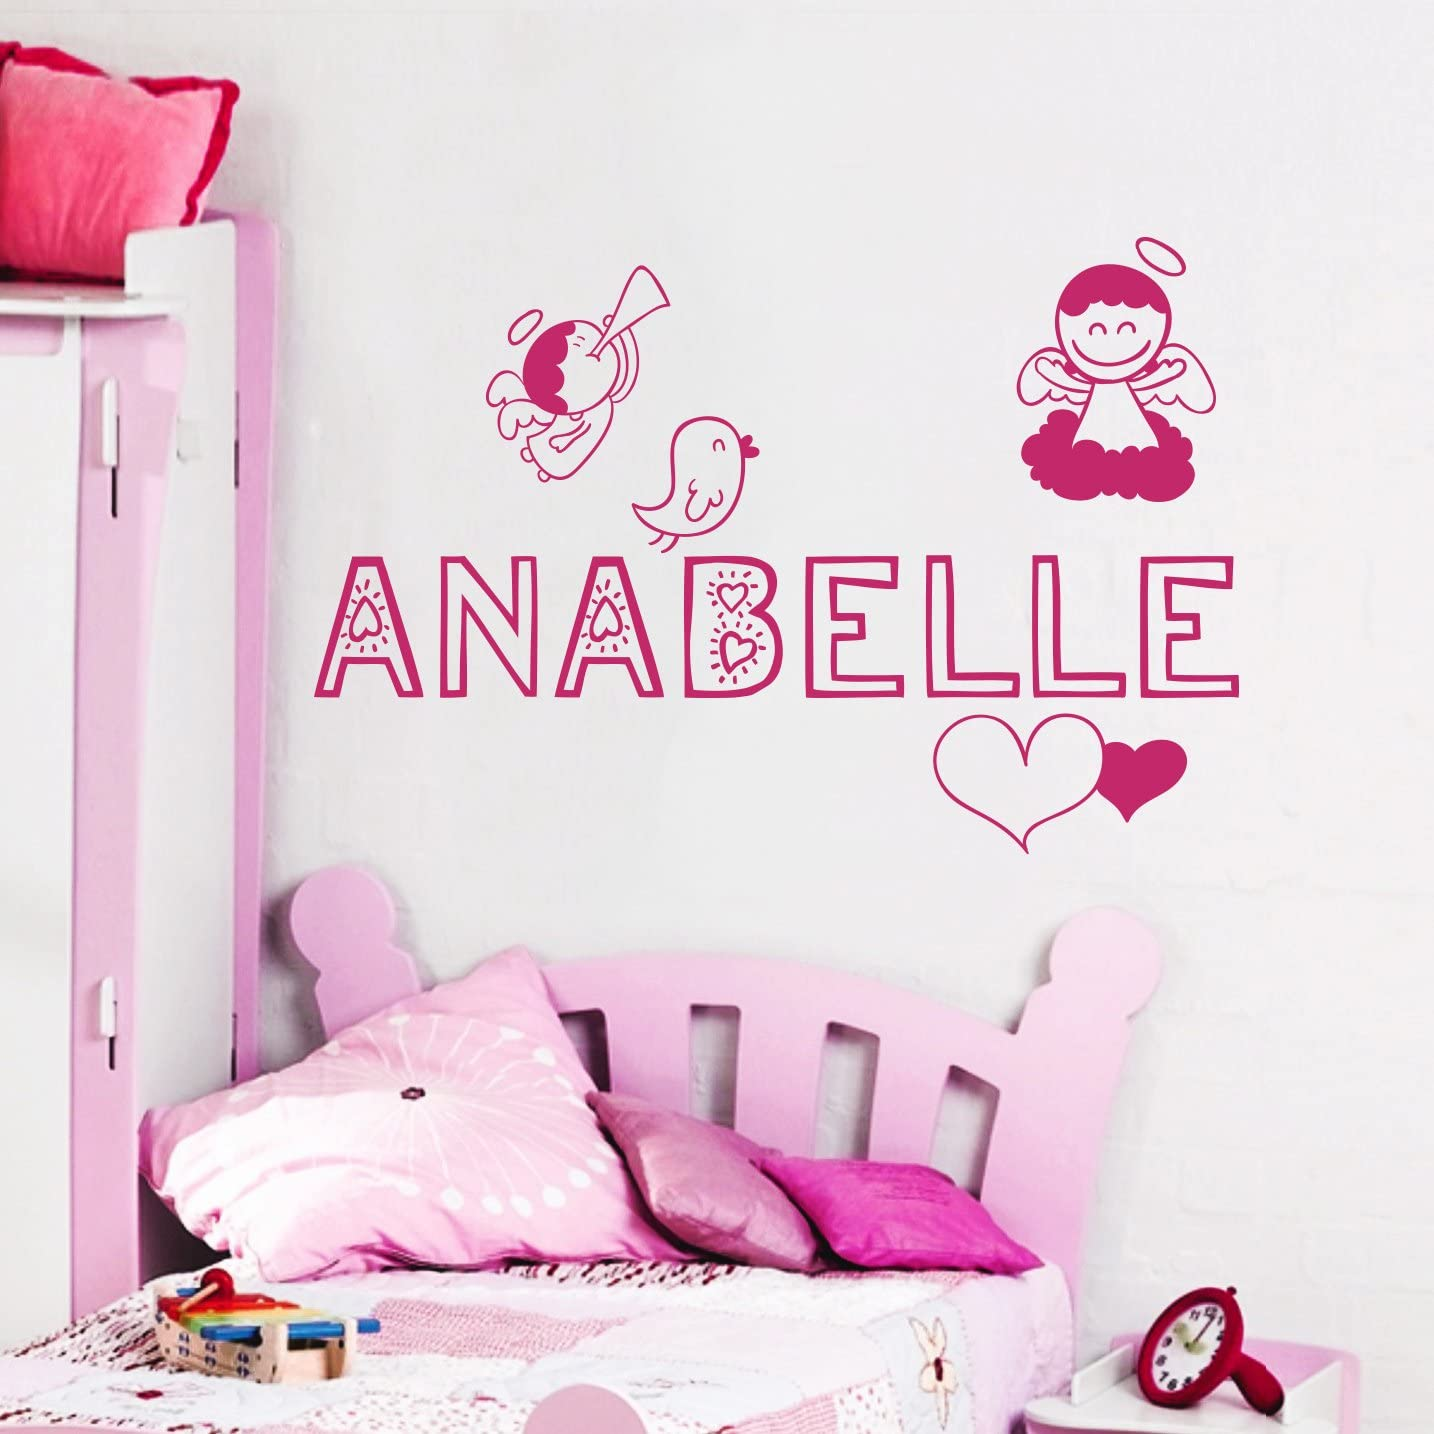 Personalized Name Angel Wings Wall Decal Angel Wall Decor Etsy In 2020 Angel Wall Decor Unicorn Wall Decal Nursery Wall Decals